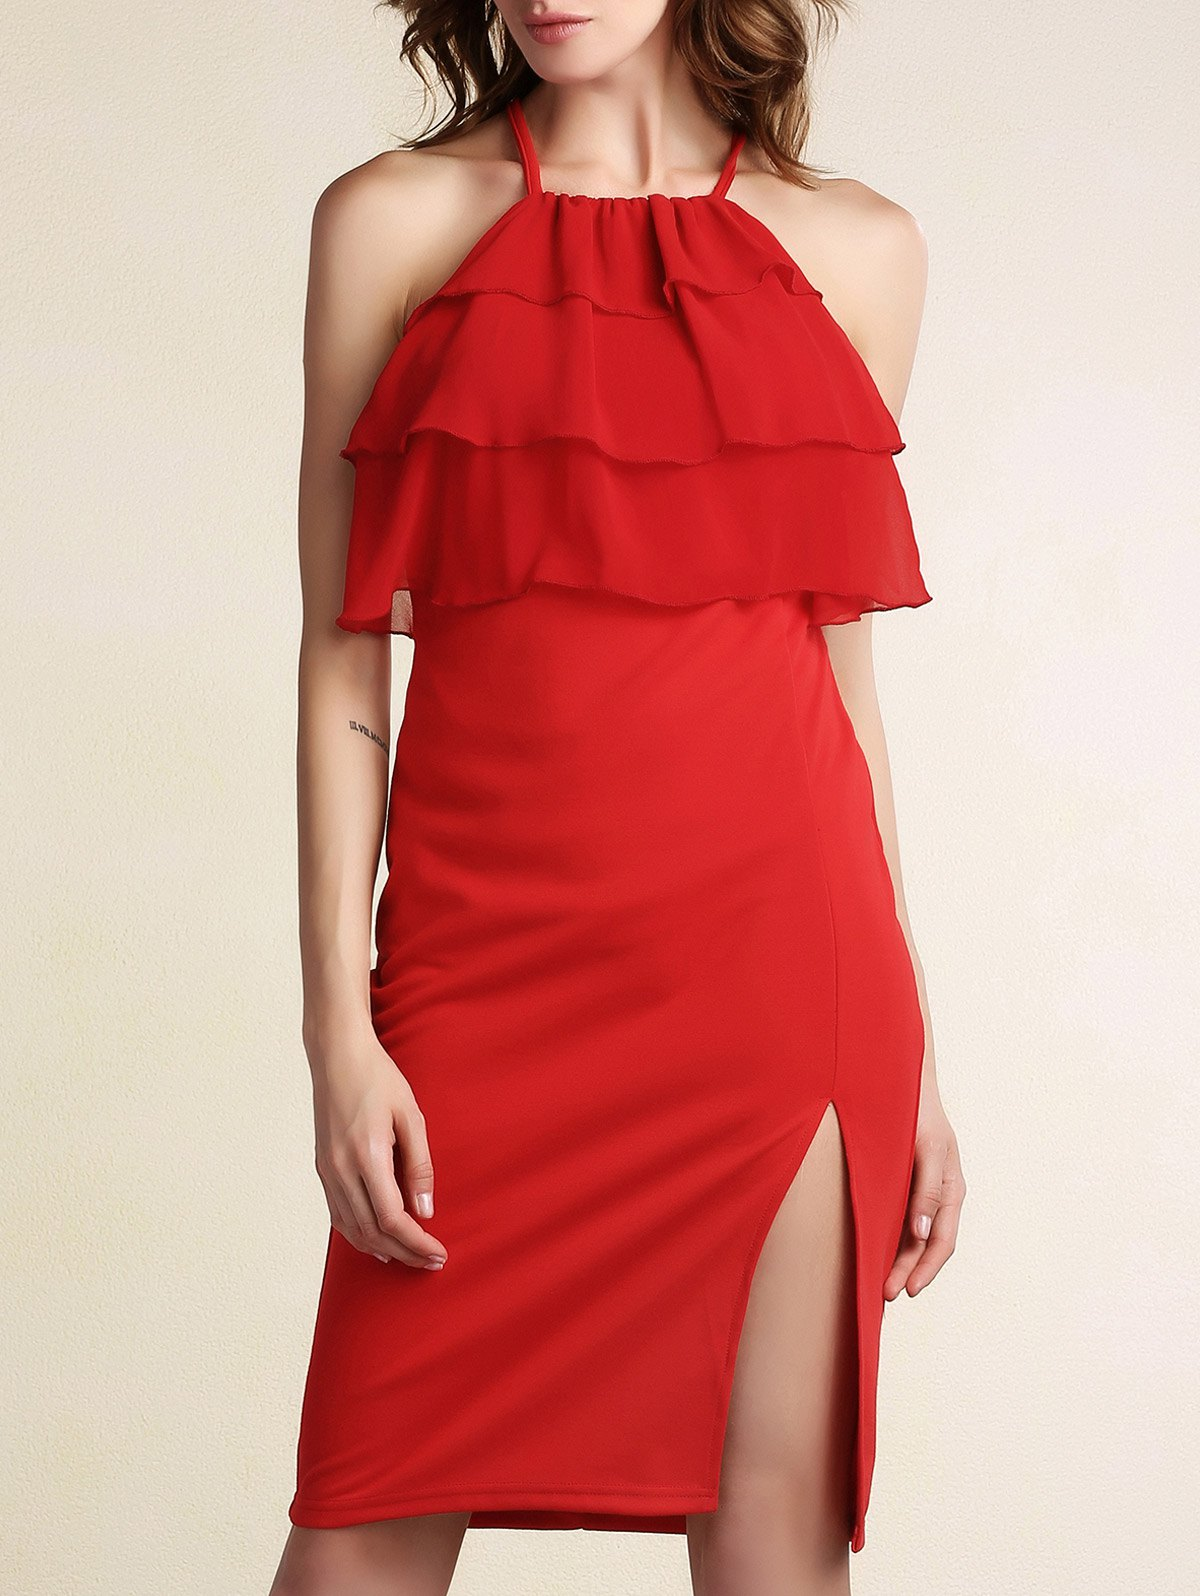 Tiered Ruffle Front Crisscross Back Red Prom Dress